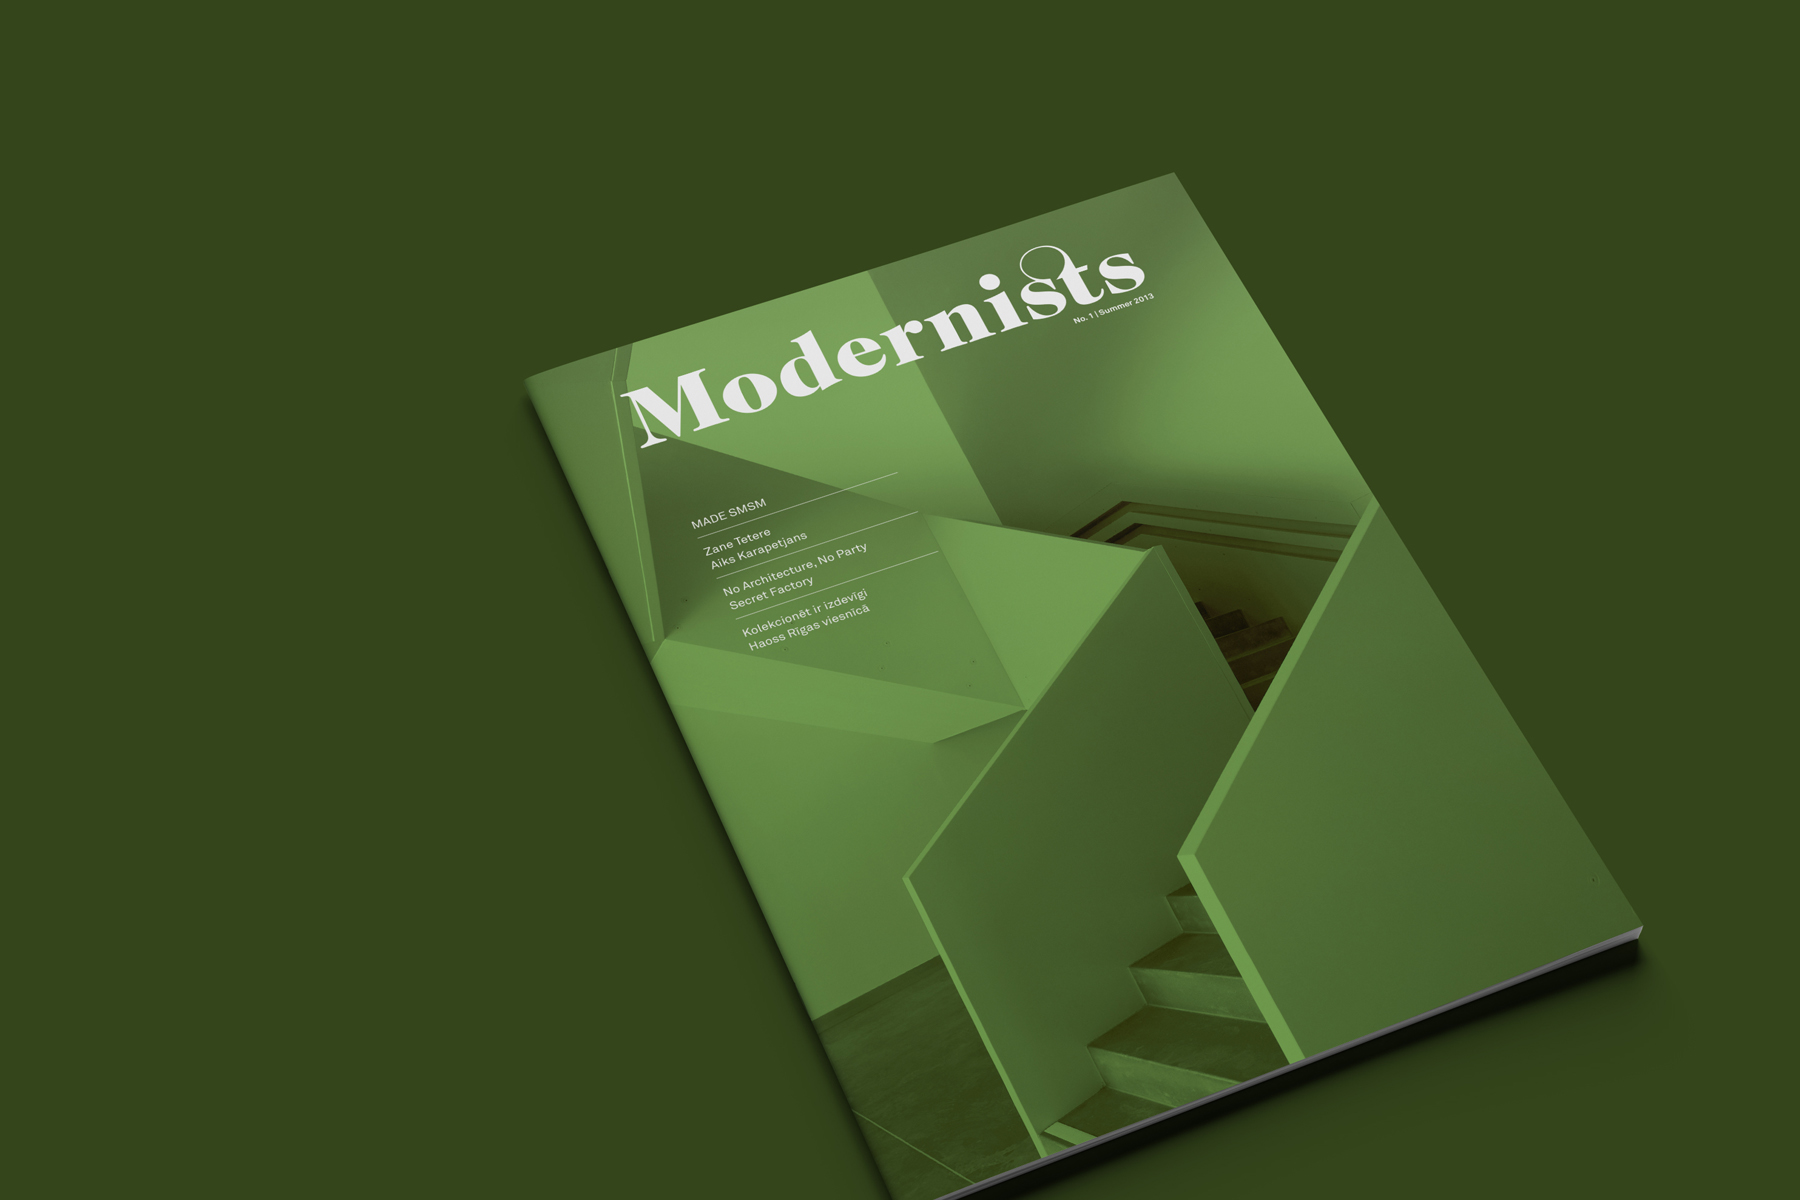 Modernists Magazine